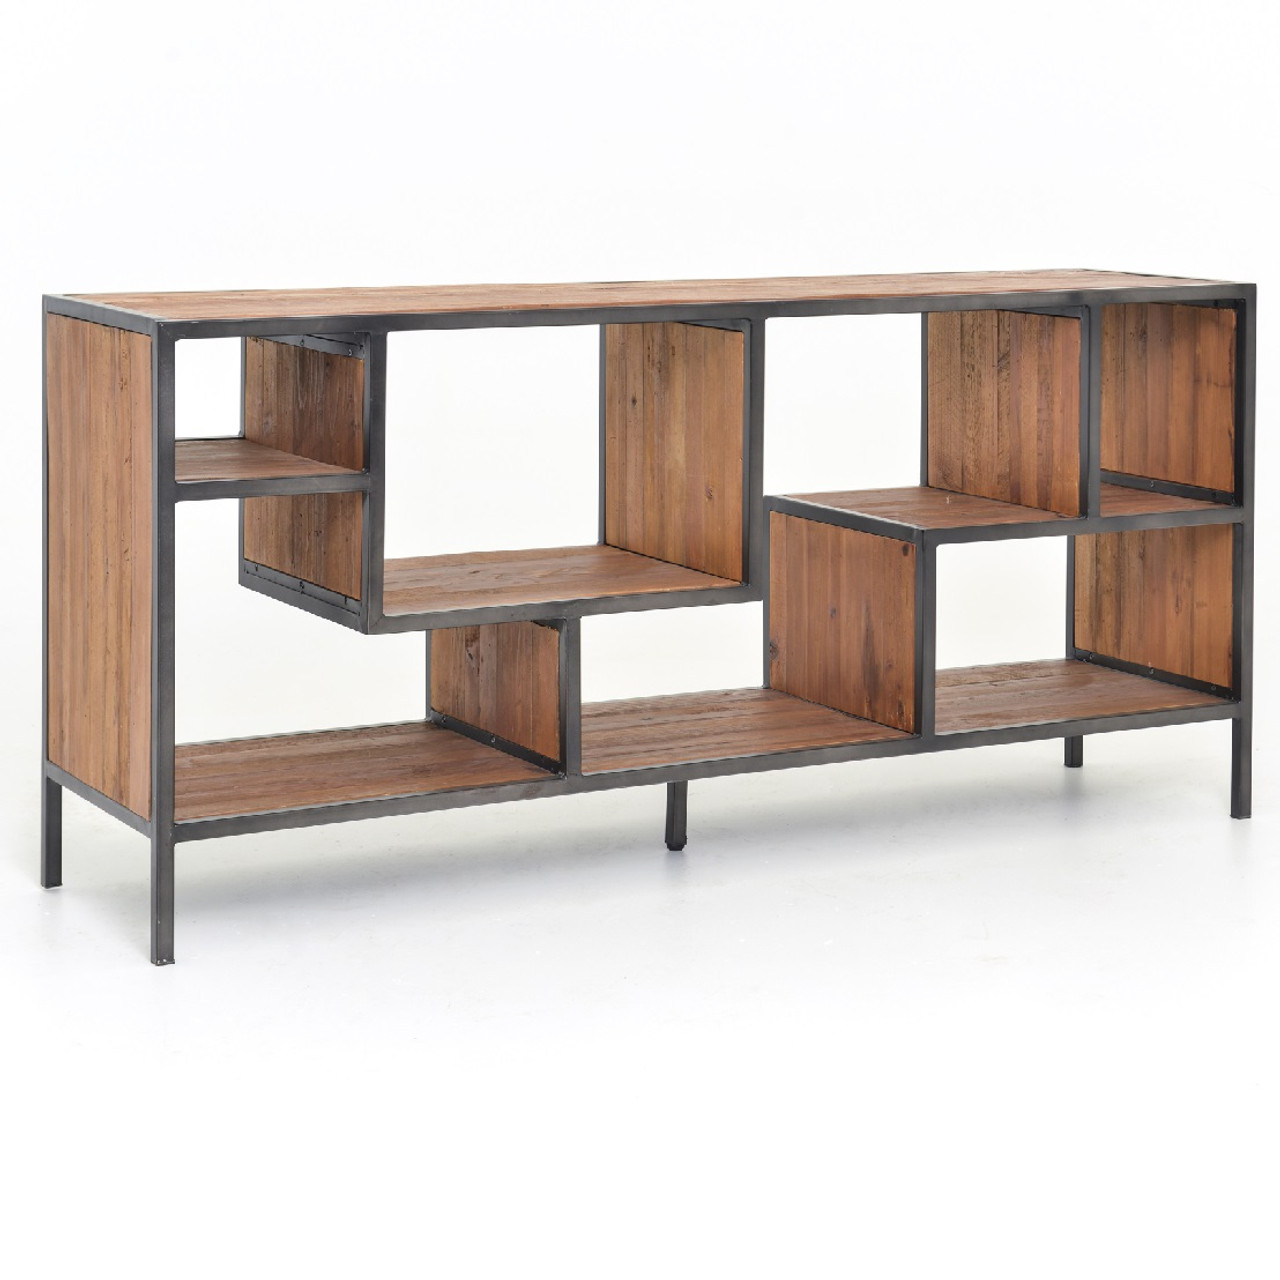 Surprising Geometric Wood And Iron Bookcase Console Download Free Architecture Designs Rallybritishbridgeorg